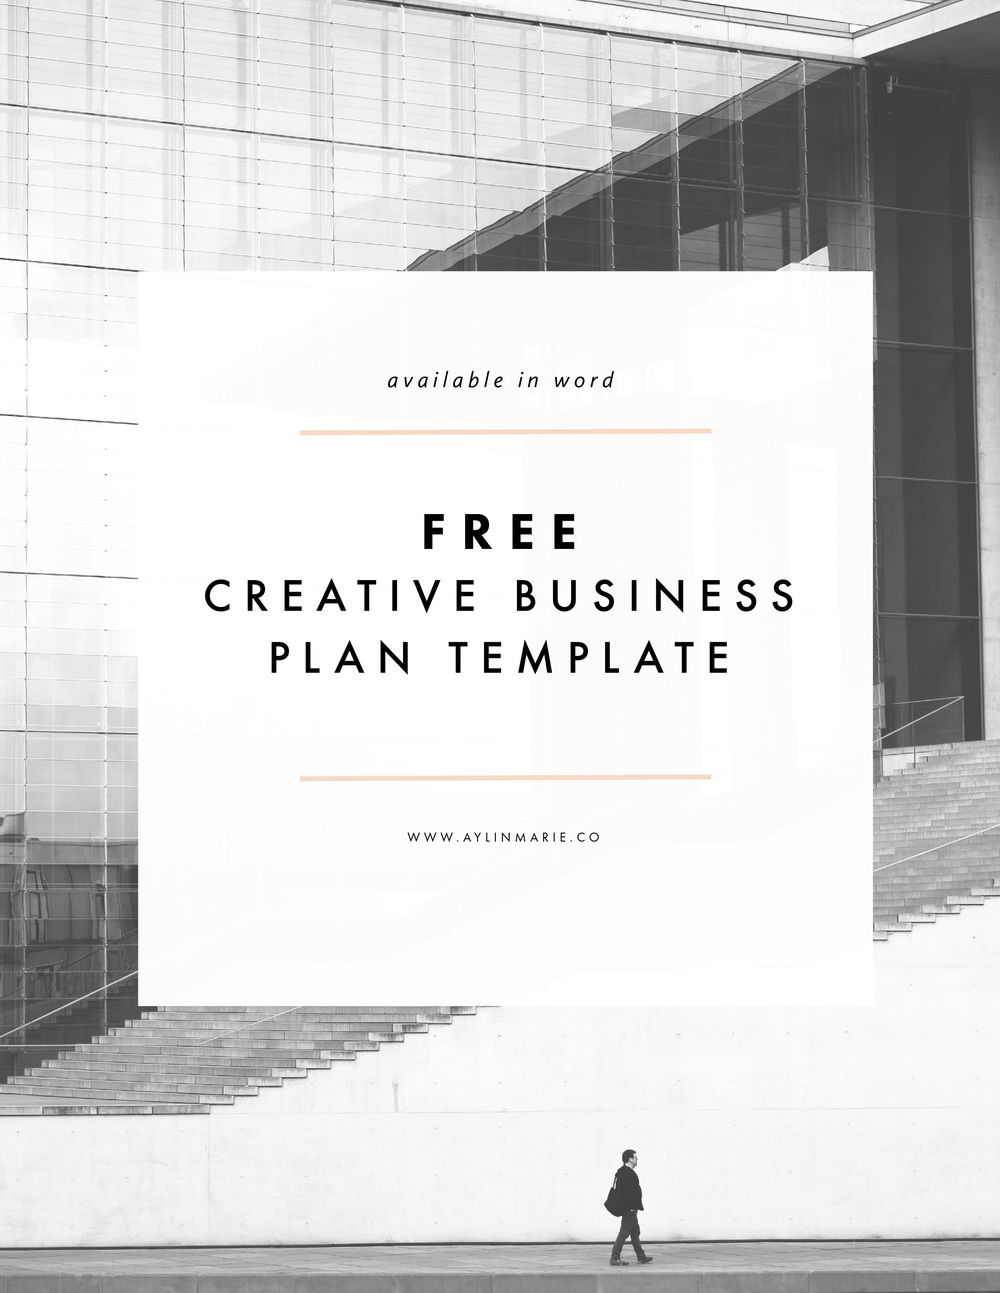 Freebie creative business plan template aylin marie freebie creative business plan template accmission Choice Image